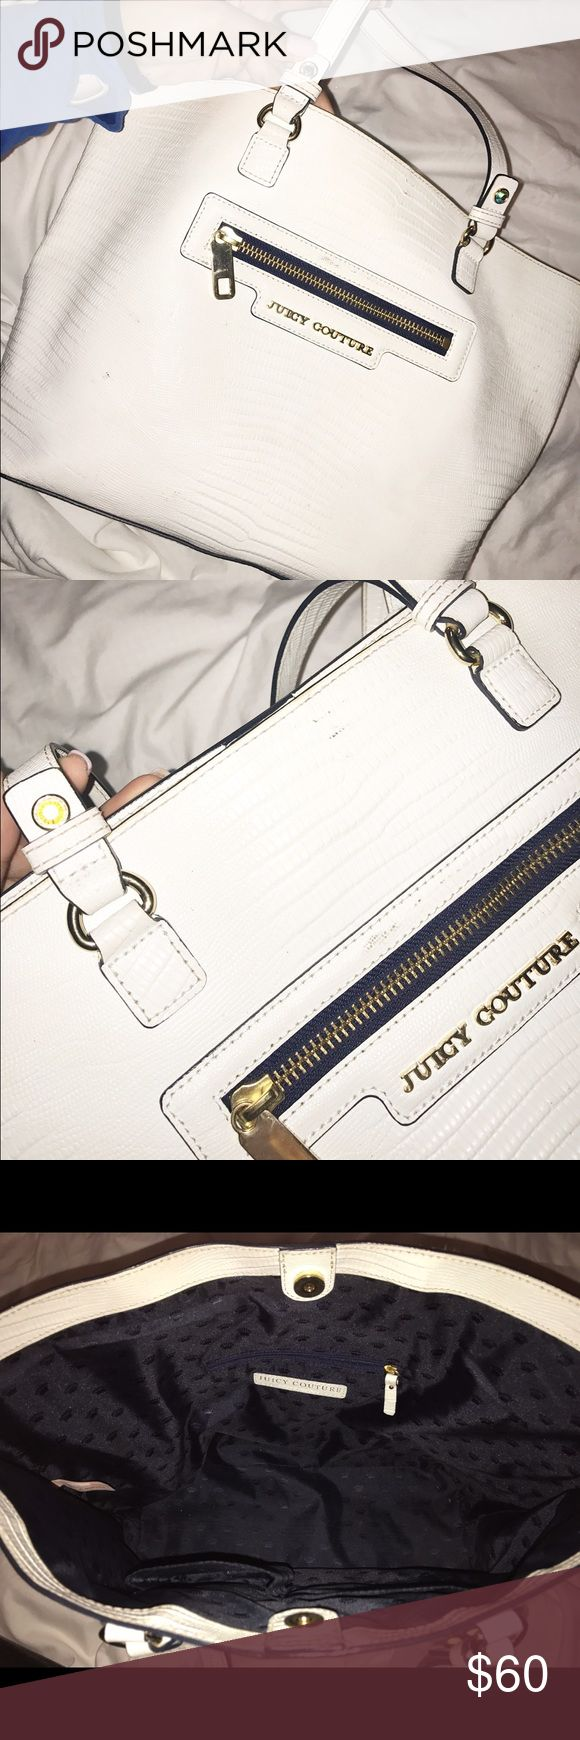 White Juicy Couture purse! Selling a white Juicy Couture purse! So beautiful & the perfect size! Make me a reasonable offer! Priced to sell! Juicy Couture Bags Shoulder Bags